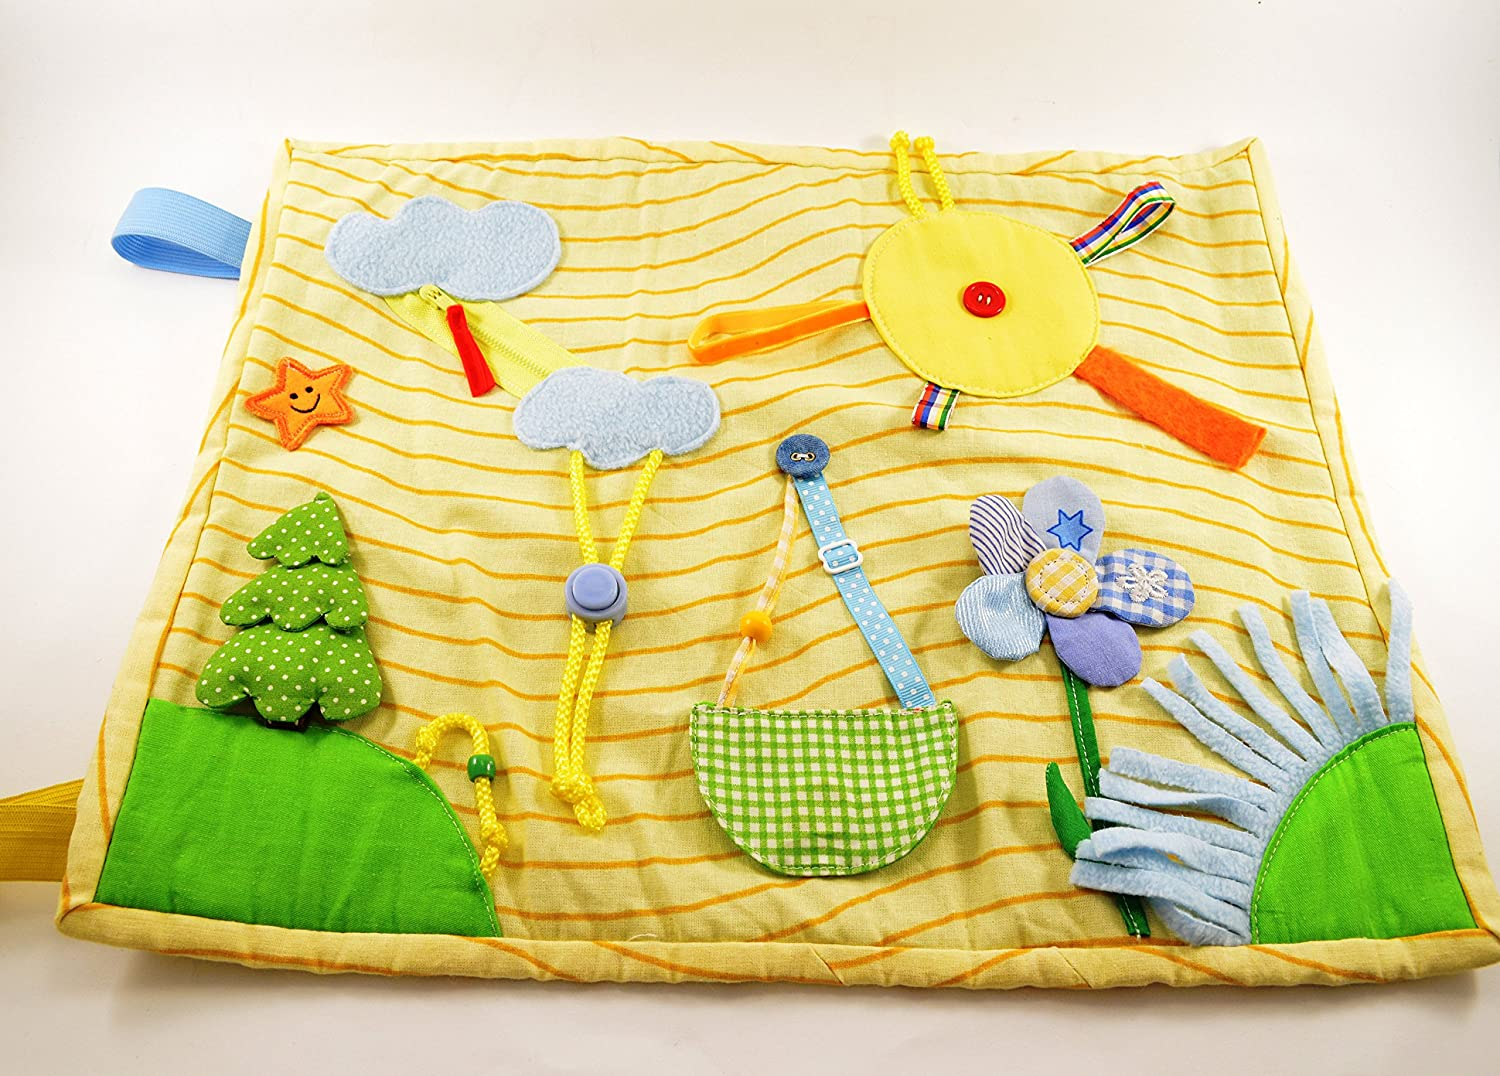 Quiet book Play mat Travel baby toy Buckle toy Waldorf toy Busy book Montessori toys Activity book Sensory blanket Toddler toy Baby gift